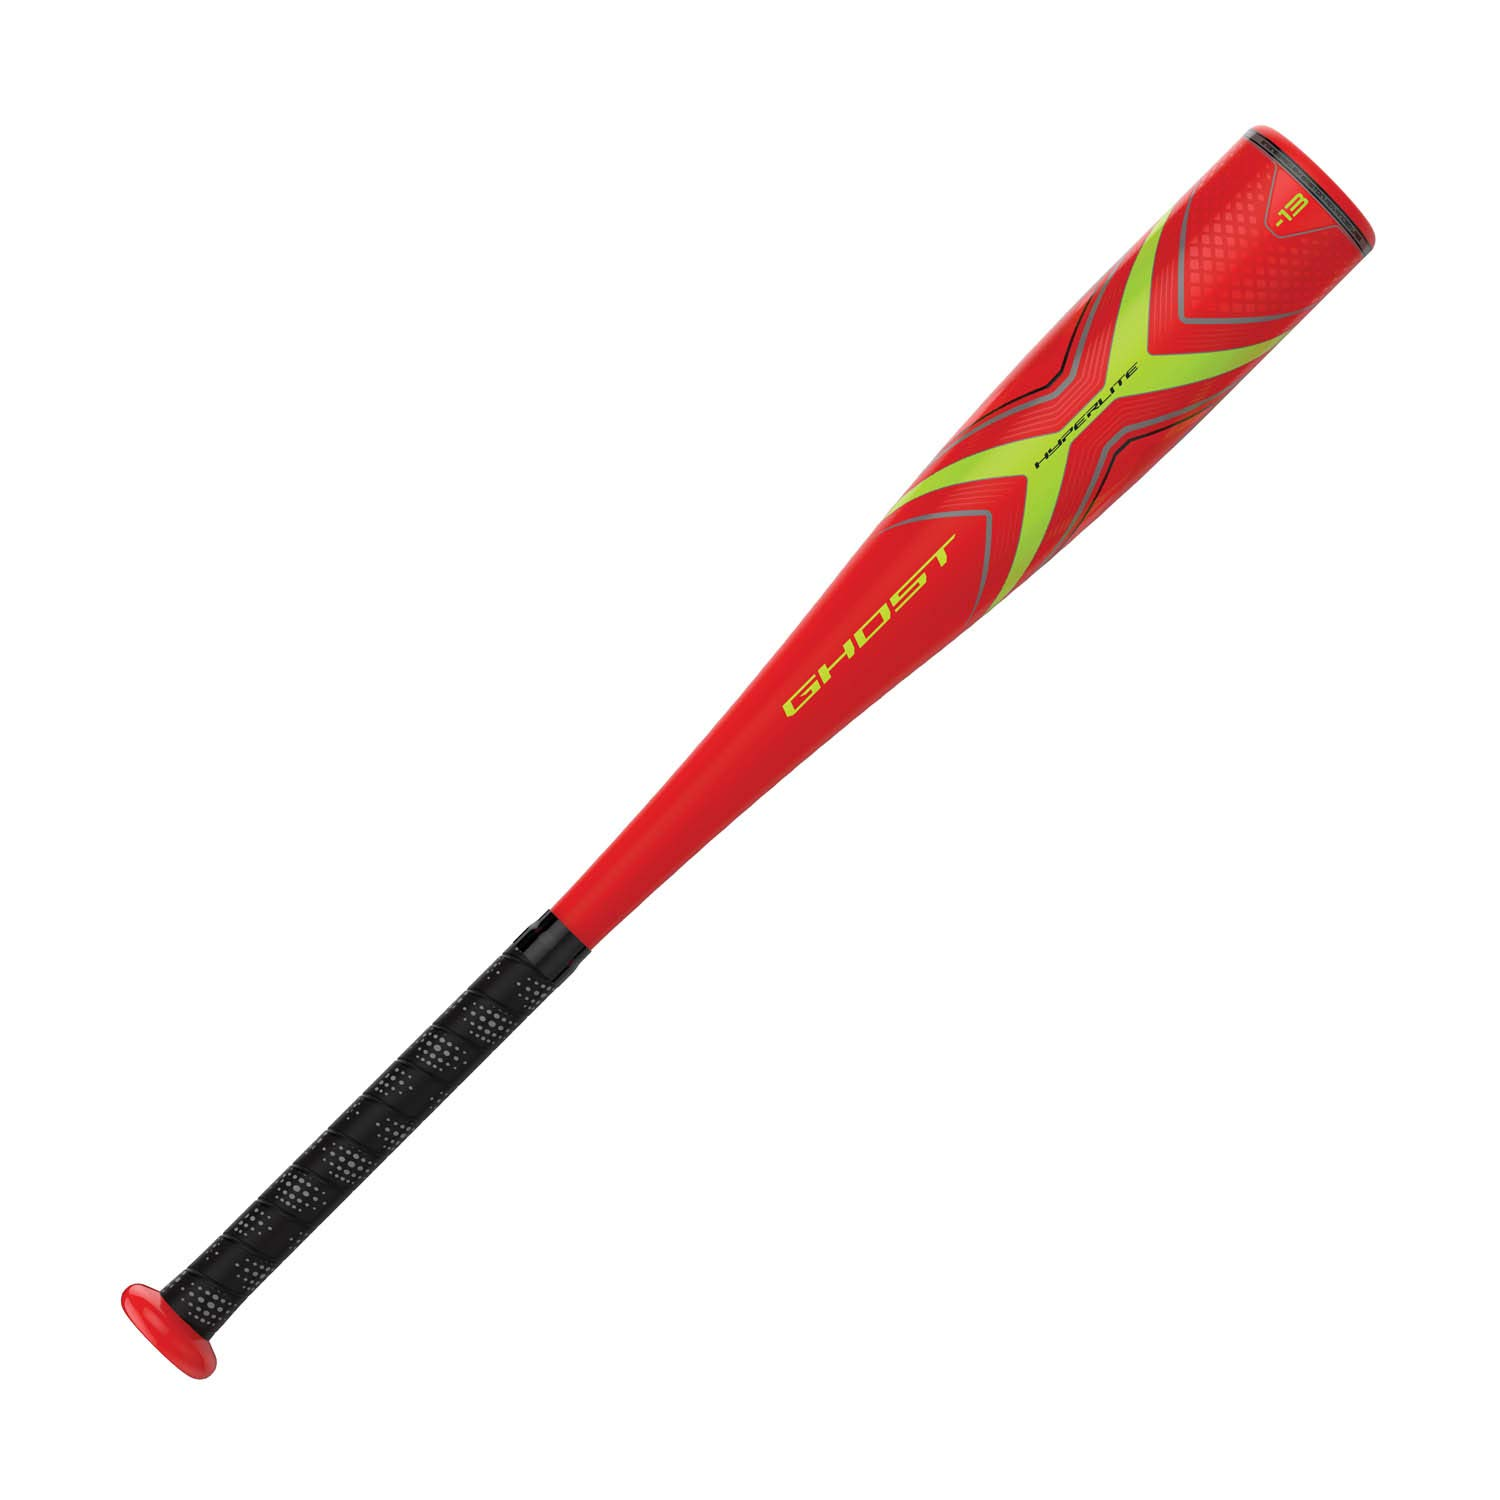 EASTON Ghost X Hyperlite -13 (2 1/4'') USA Youth / Kids Tee Ball Baseball Bat | 24 inch / 11 oz | 2019 | 1 Piece Composite | EXACT Carbon | Comfort Grip